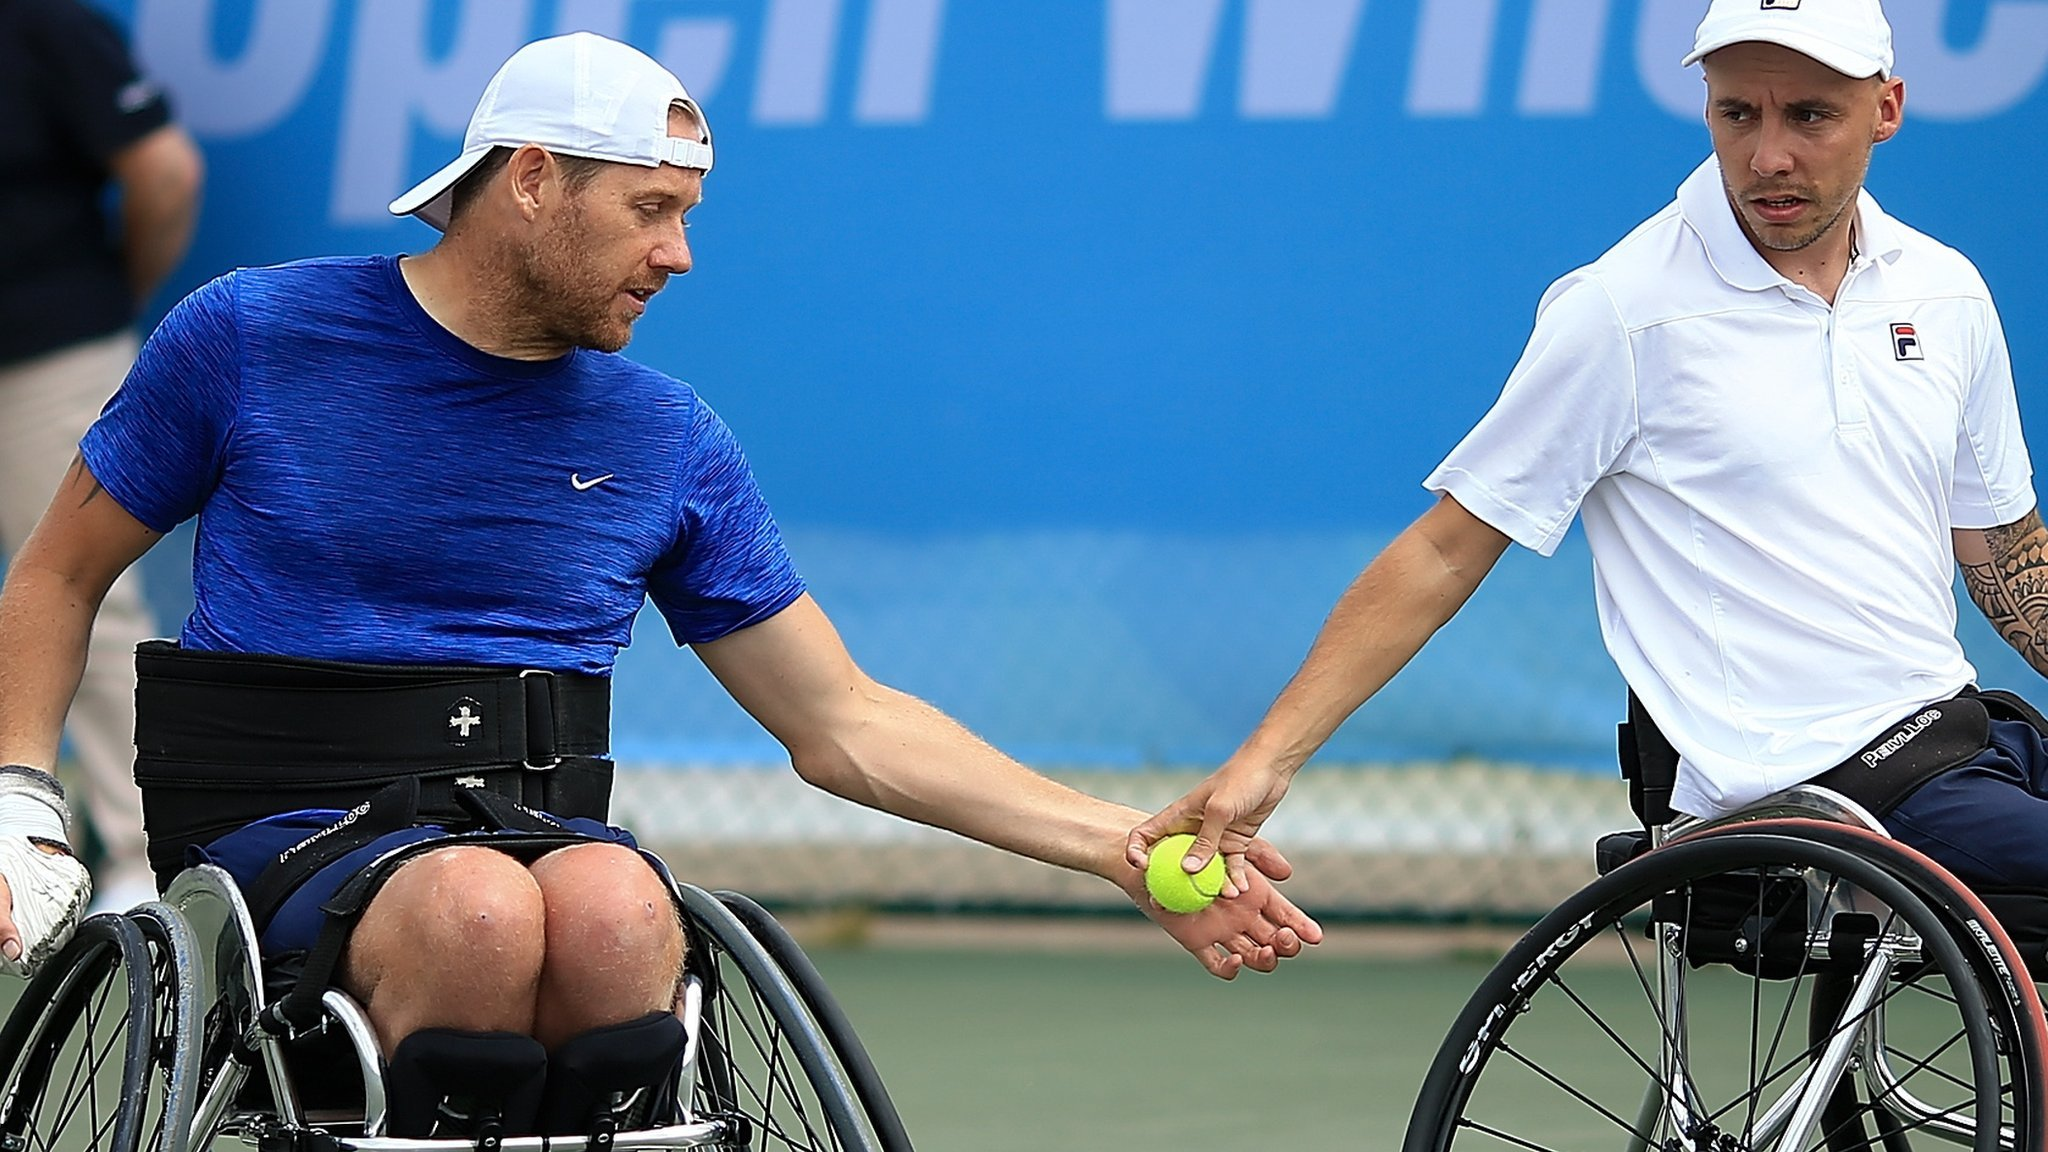 GB's Cotterill & Lapthorne lose Masters final